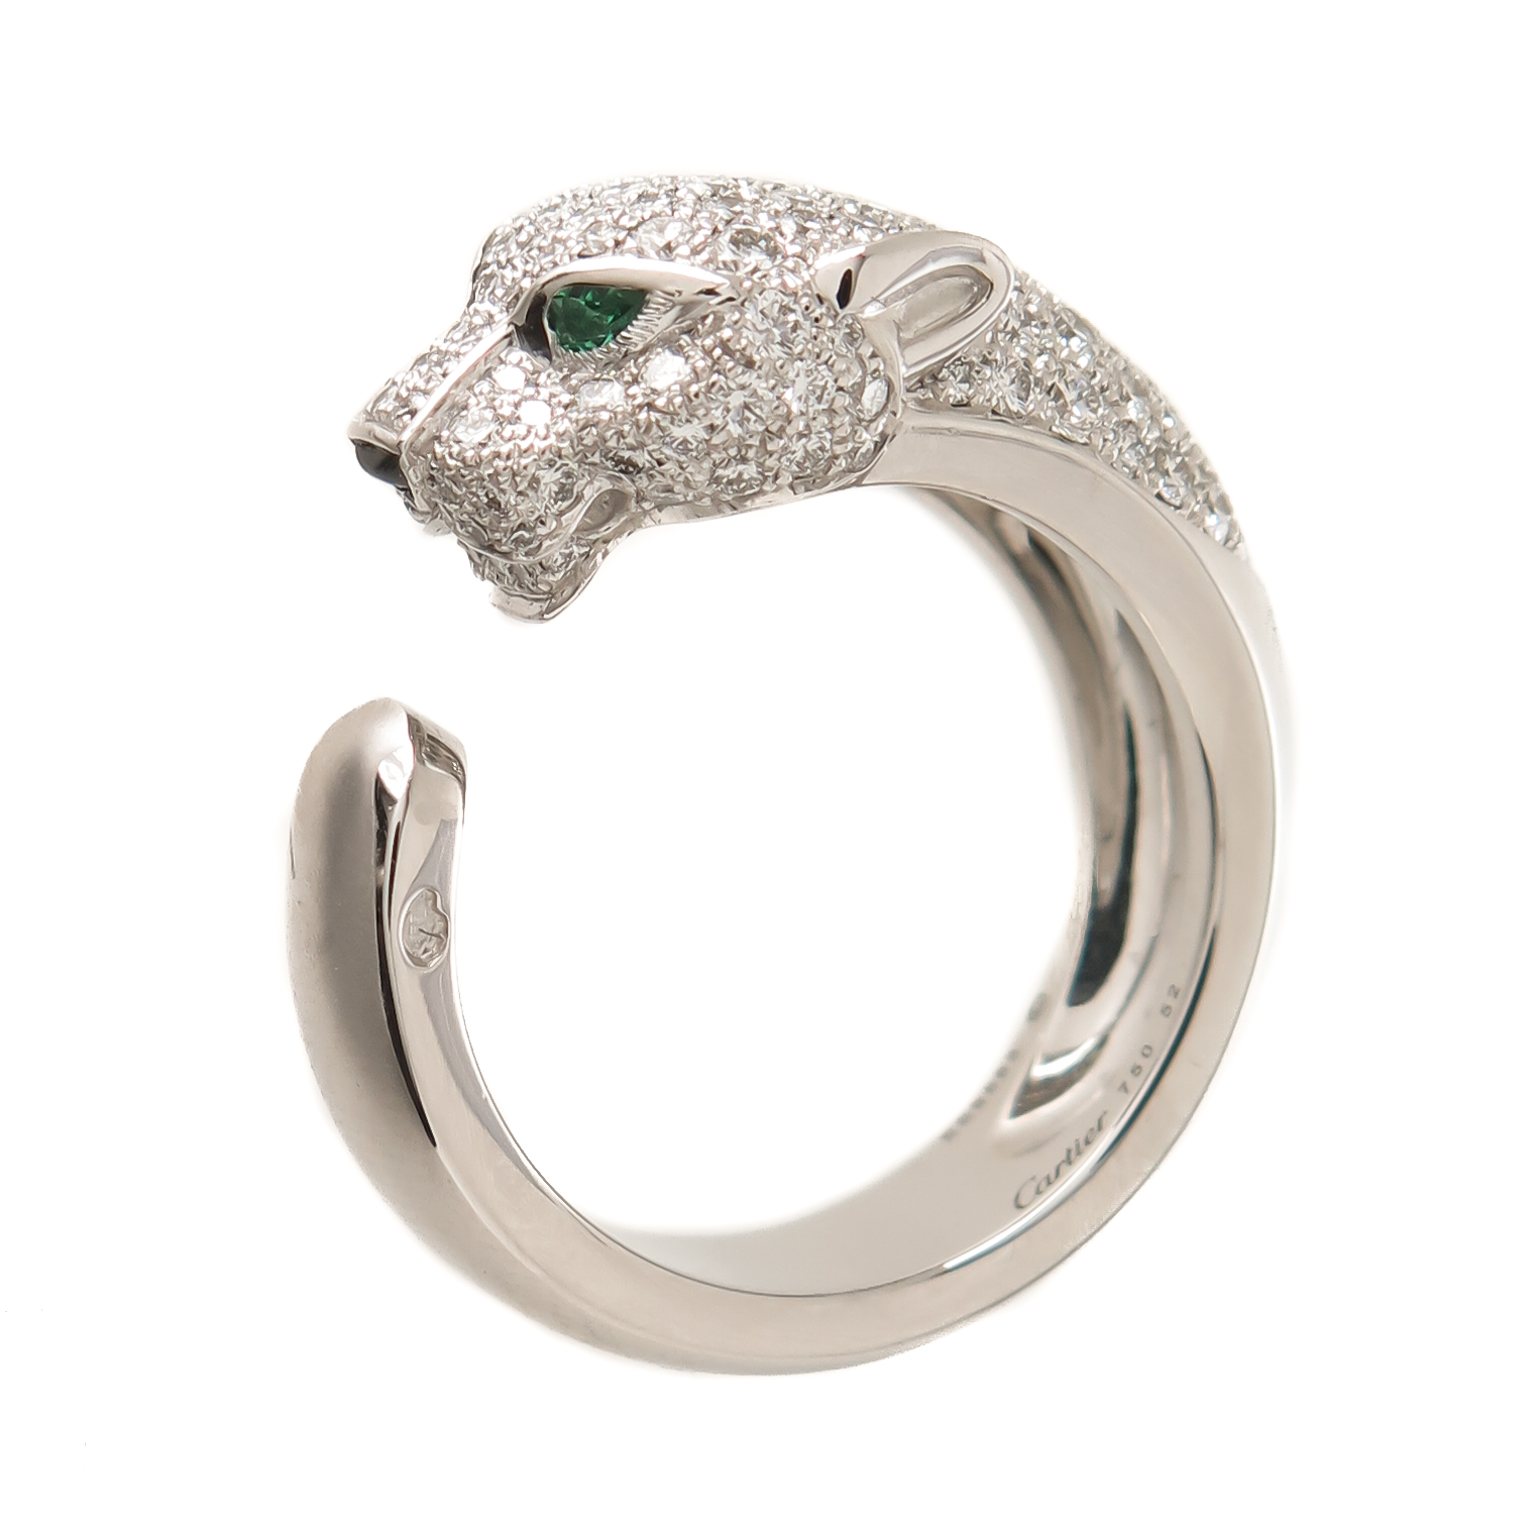 Cartier Diamond Gold Panther Ring     N  GREEN AND SONS Cartier Diamond Gold Panther Ring